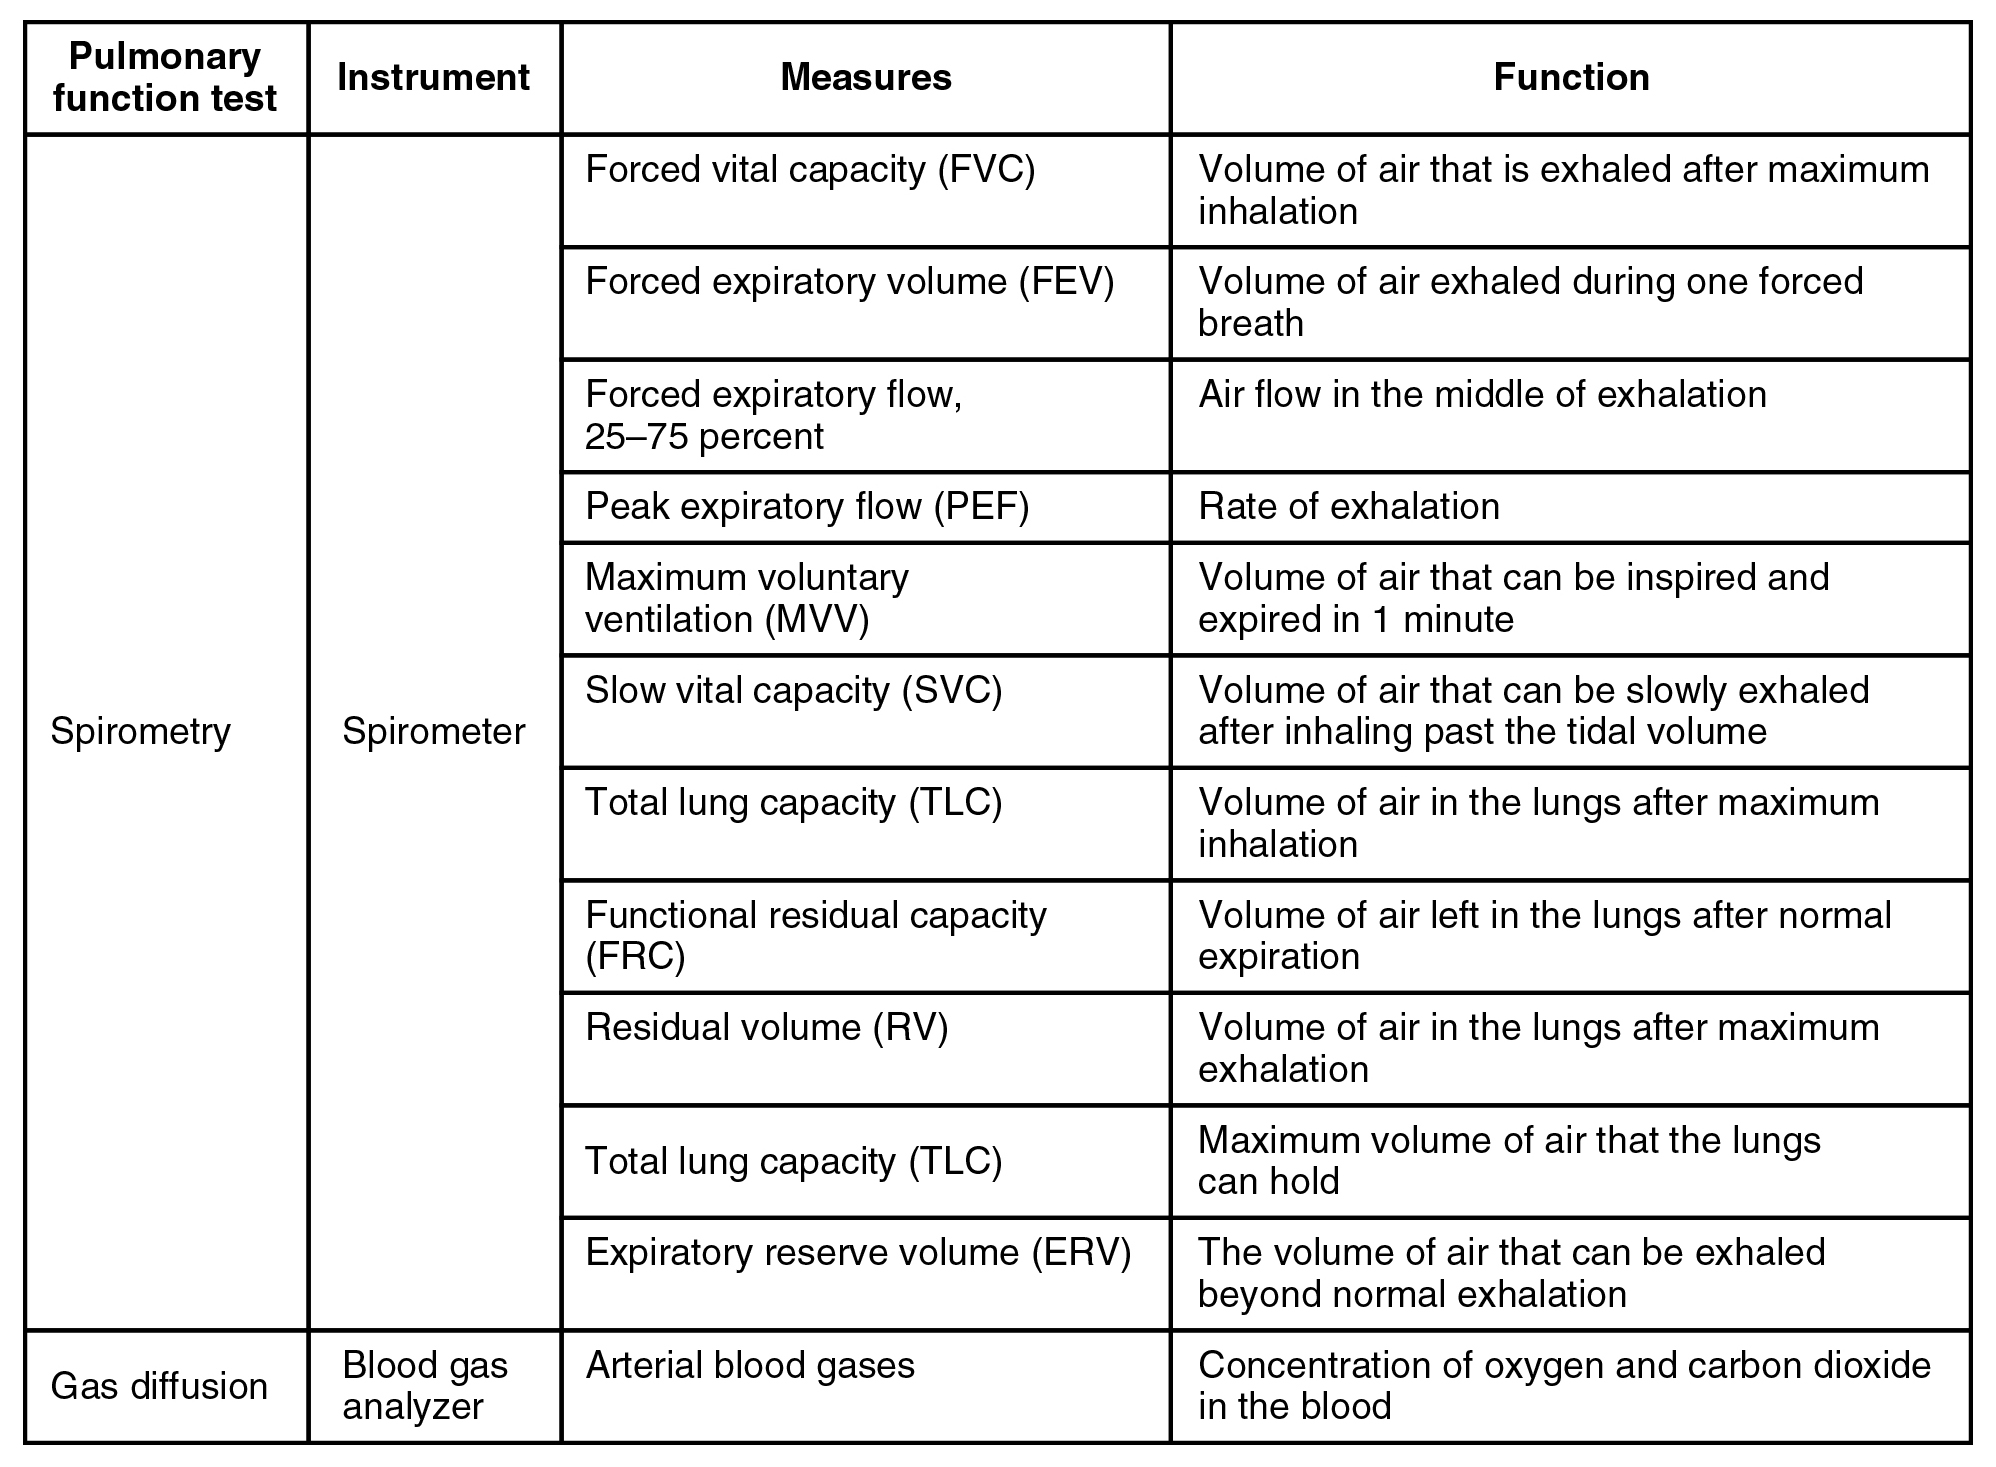 This tables describes methods of pulmonary function testing. Spirometry tests require a spirometer. These tests can measure forced vital capacity (FVC), the volume of air that is exhaled after maximum inhalation; foreced expiratory volume (FEV), the volume of air exhaled in one breath; forced expiratory flow, 25 to 75 percent, the air flow in the middle of exhalation; peak expiratory flow (PEF), the rate of exhalation; maximum voluntary ventilation (MVV), the volume of air that can be inspired and expired in 1 minute; slow vital capacity (SVC), the volume of air that can be slowly exhaled after inhaling past the tidal volume; total lung capacity (TLC), the volume of air in the lungs after maximum inhalation; functional residual capacity (FRC), the volume of air left in the lungs after normal expiration; residual volume (RV), the volume of air in the lungs after maximum exhalation; total lung capacity (TLC), the maximum volume of air that the lungs can hold; and expiratory reserve volume (ERV), the volume of air that can be exhaled beyond normal exhalation. Gas diffusion tests require a blood gas analyzer. These tests can measure arterial blood gases, the concentration of oxygen and carbon dioxide in the blood.